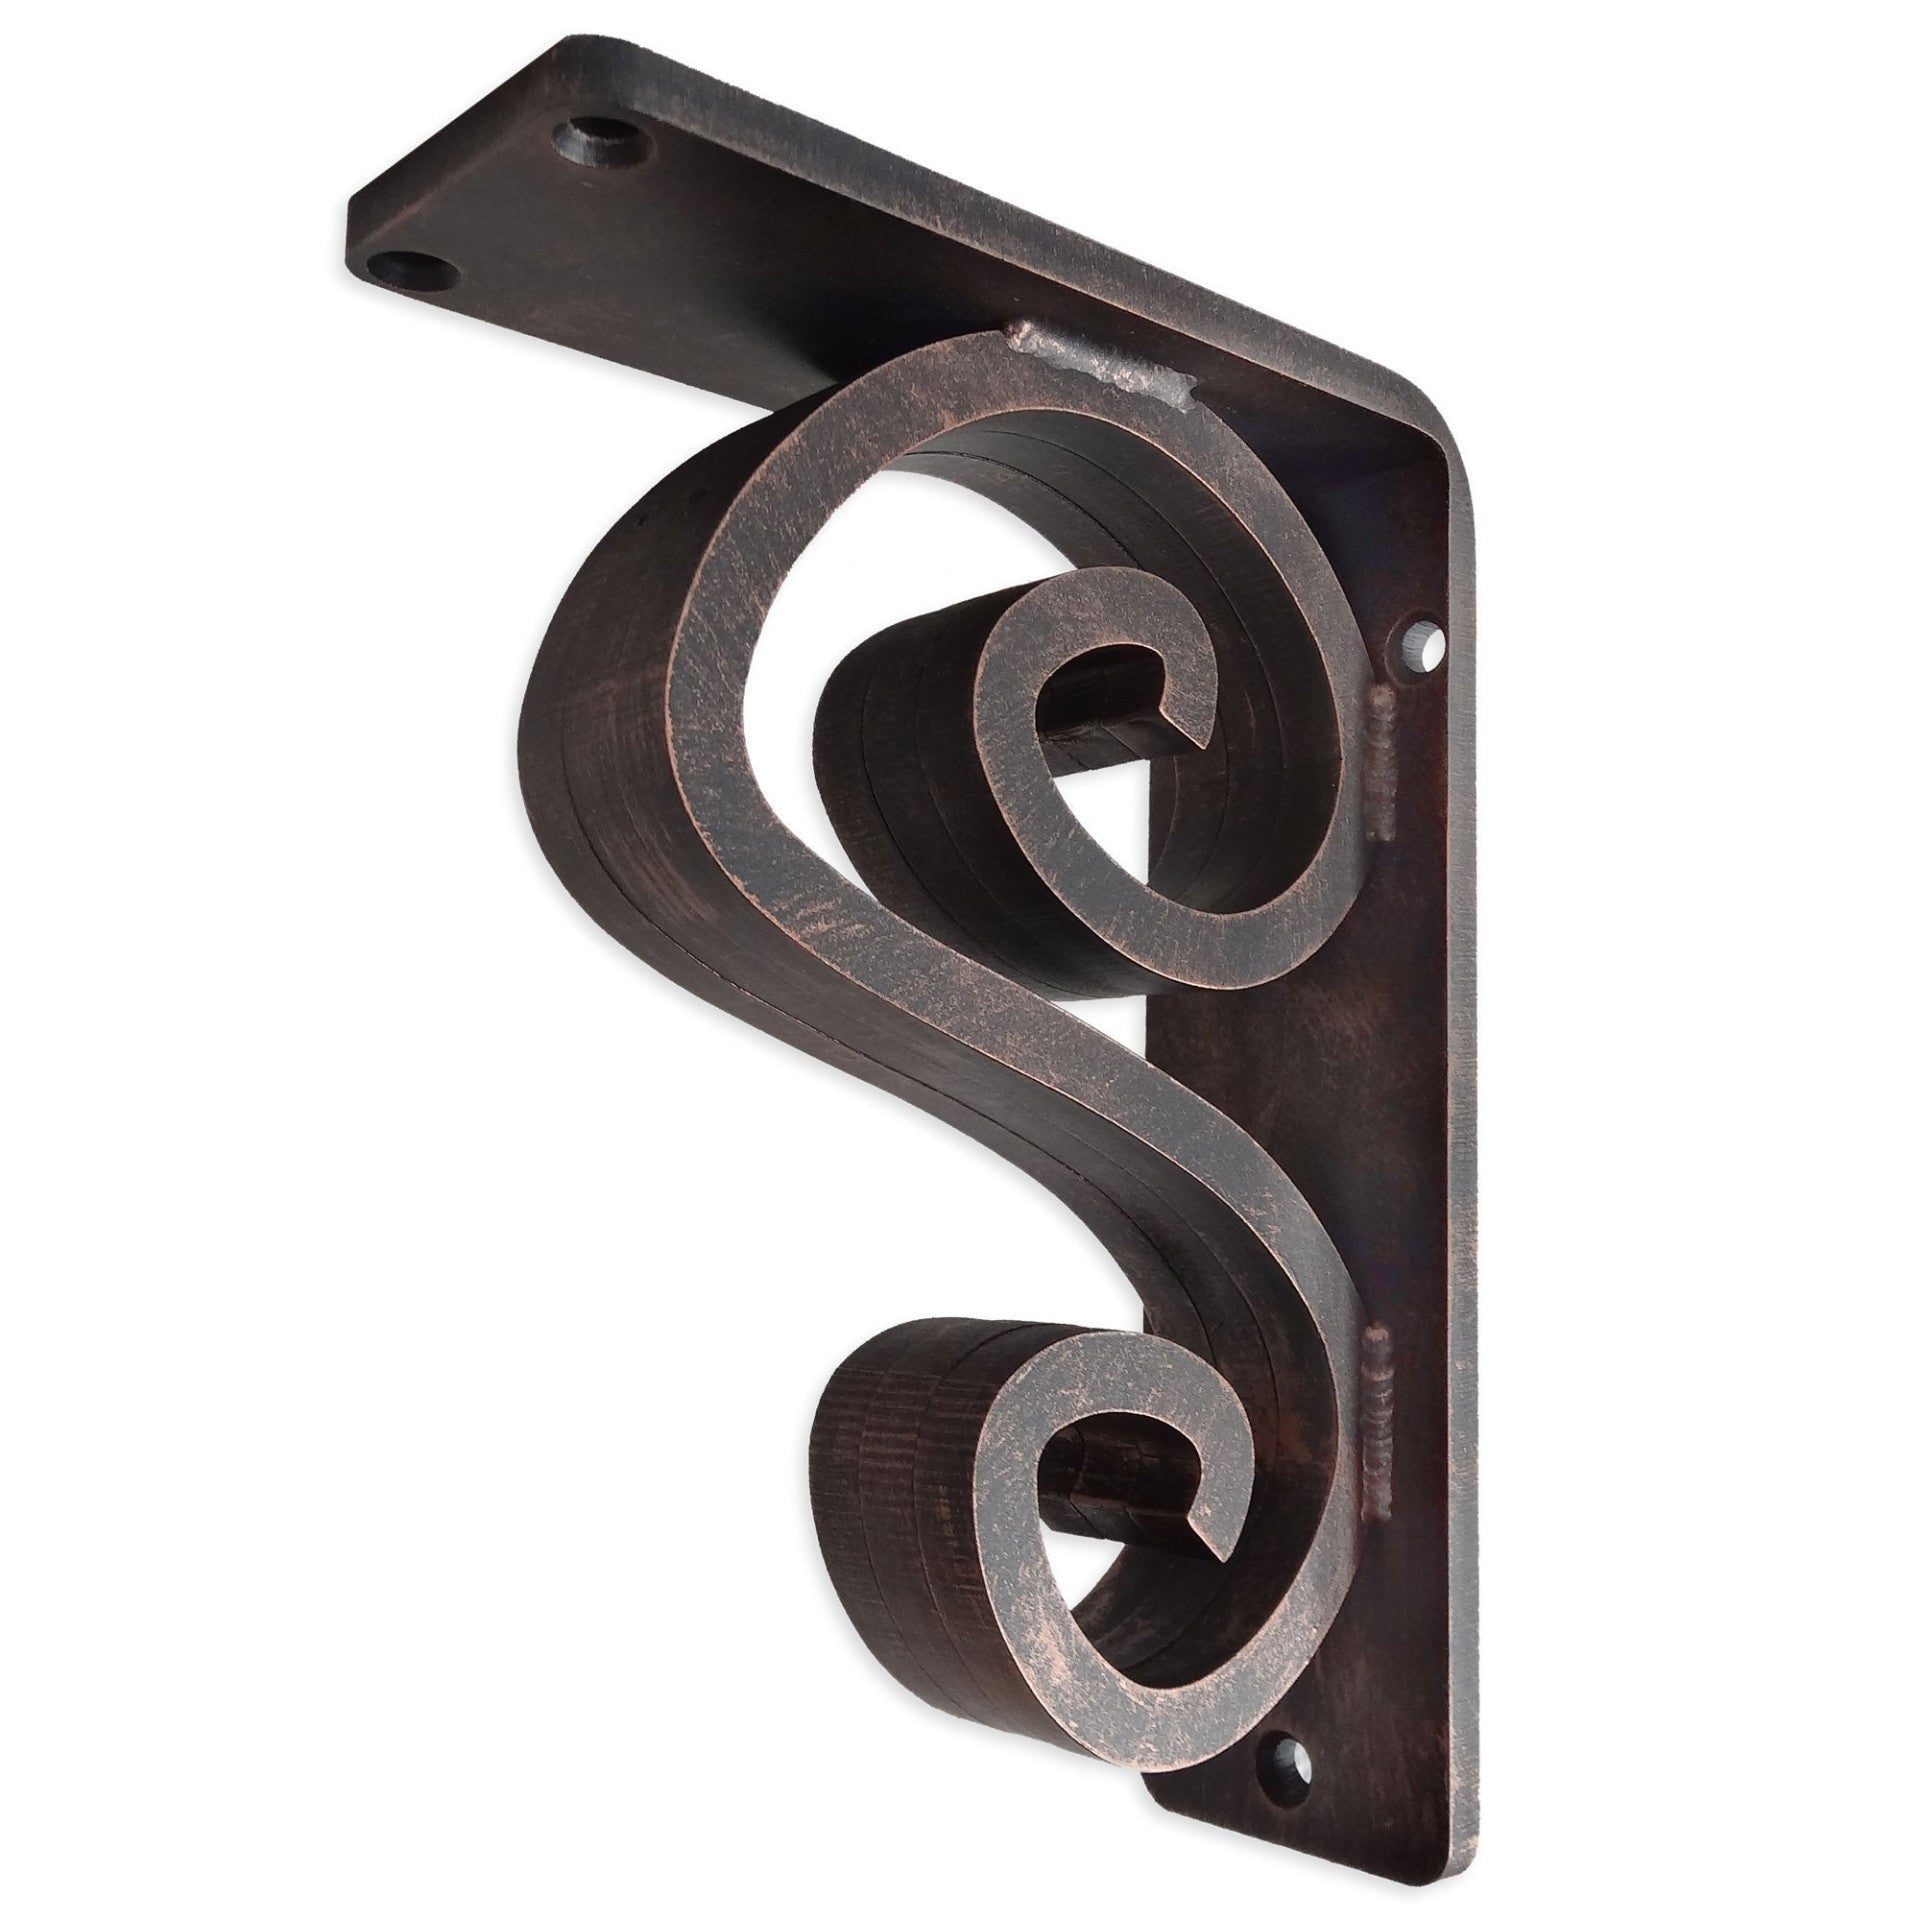 This is our 2-inch wide Arts N Crafts Iron Corbel with Aged Bronze Iron Finish.